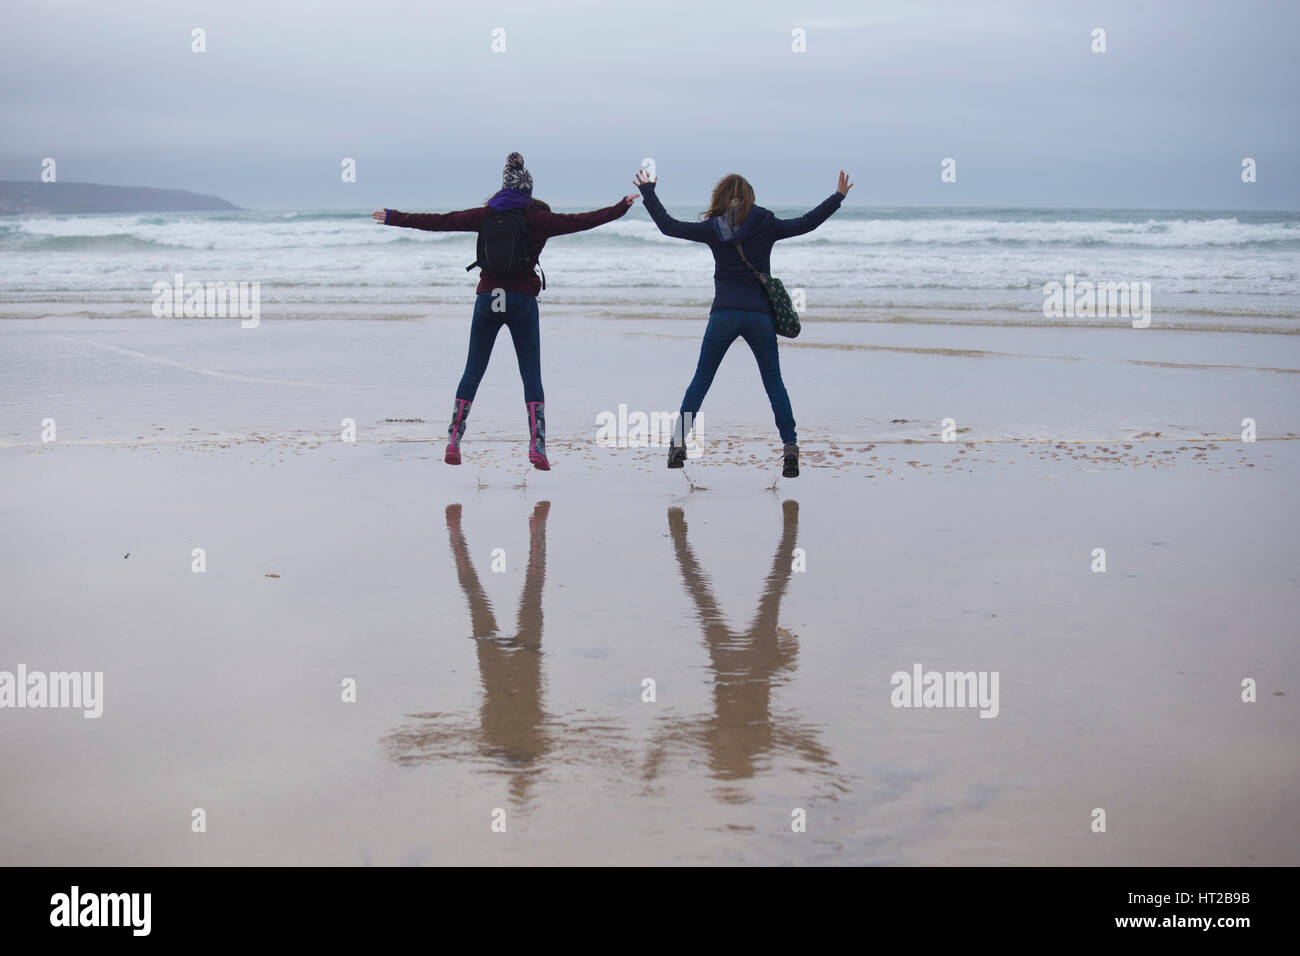 Two Girls Doing Star Jumps on Godrevy Beach, Cornwall UK - Stock Image